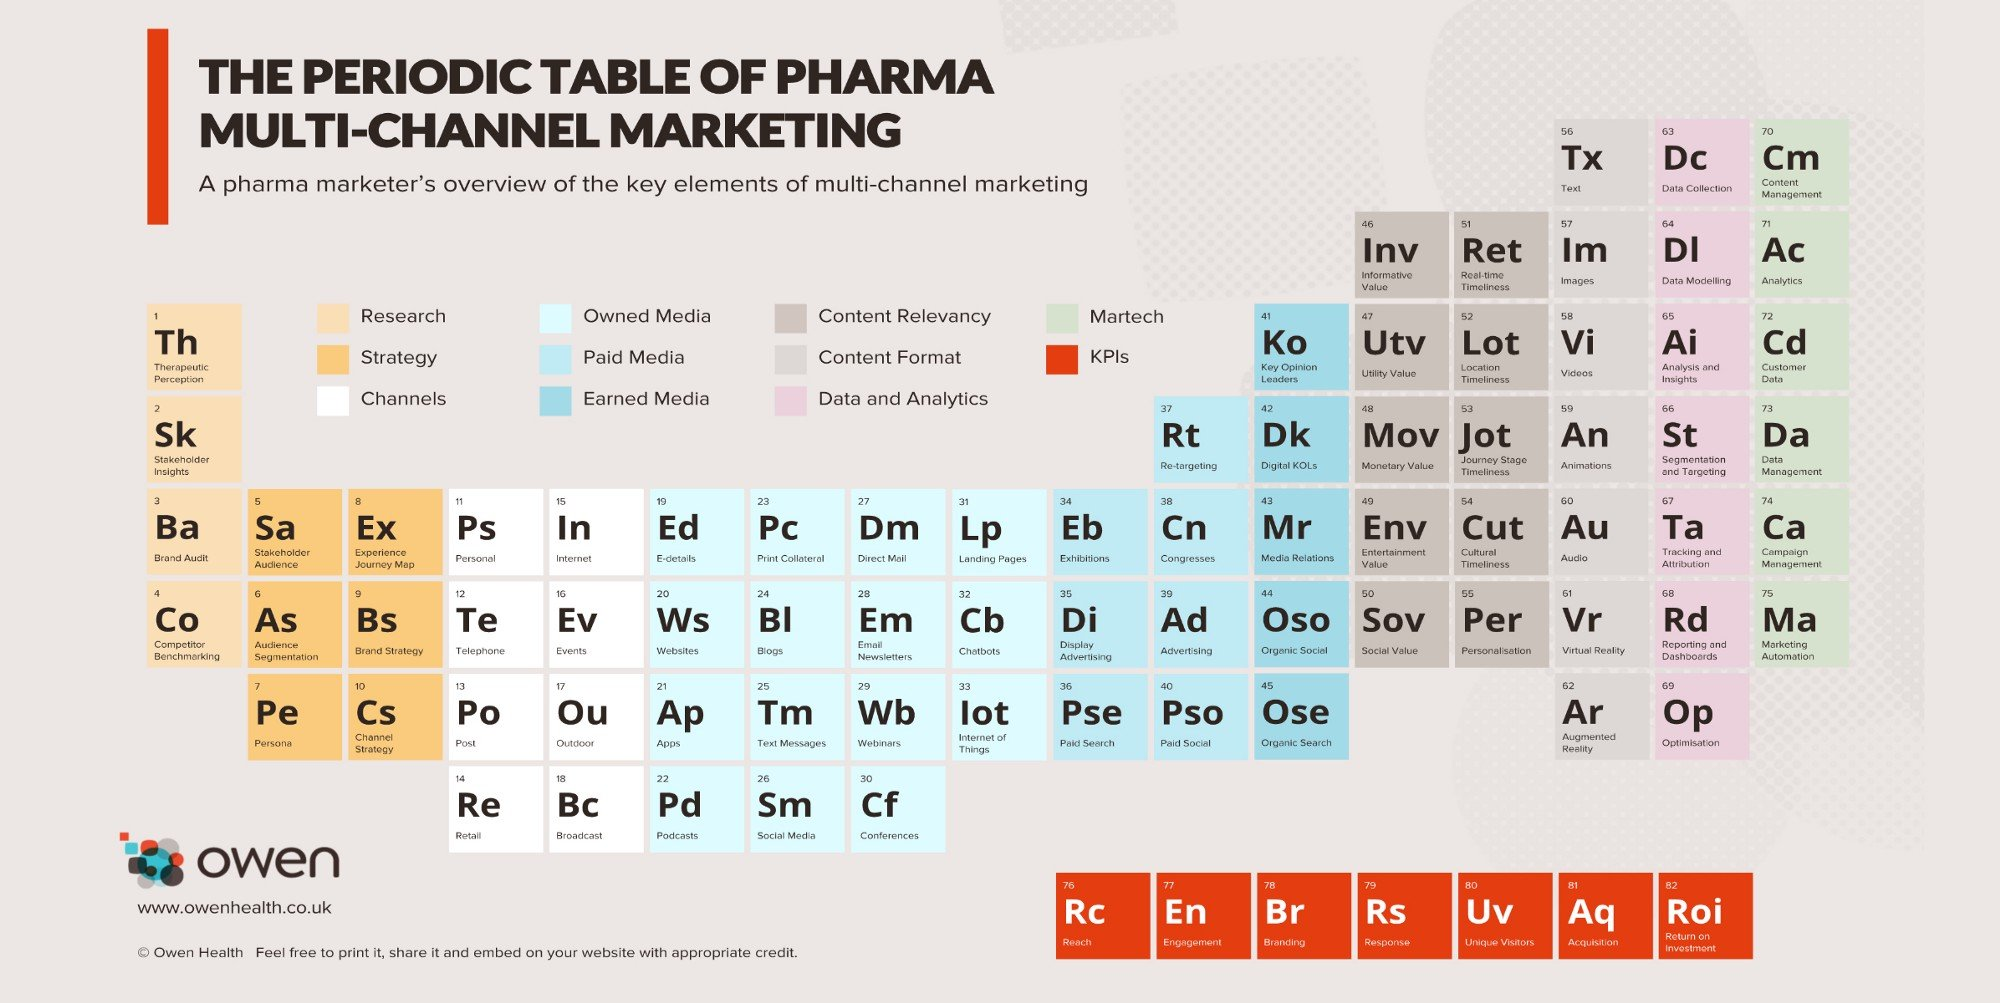 Its Elementary Pharma Periodic Table Twist On Marketing Lays Out